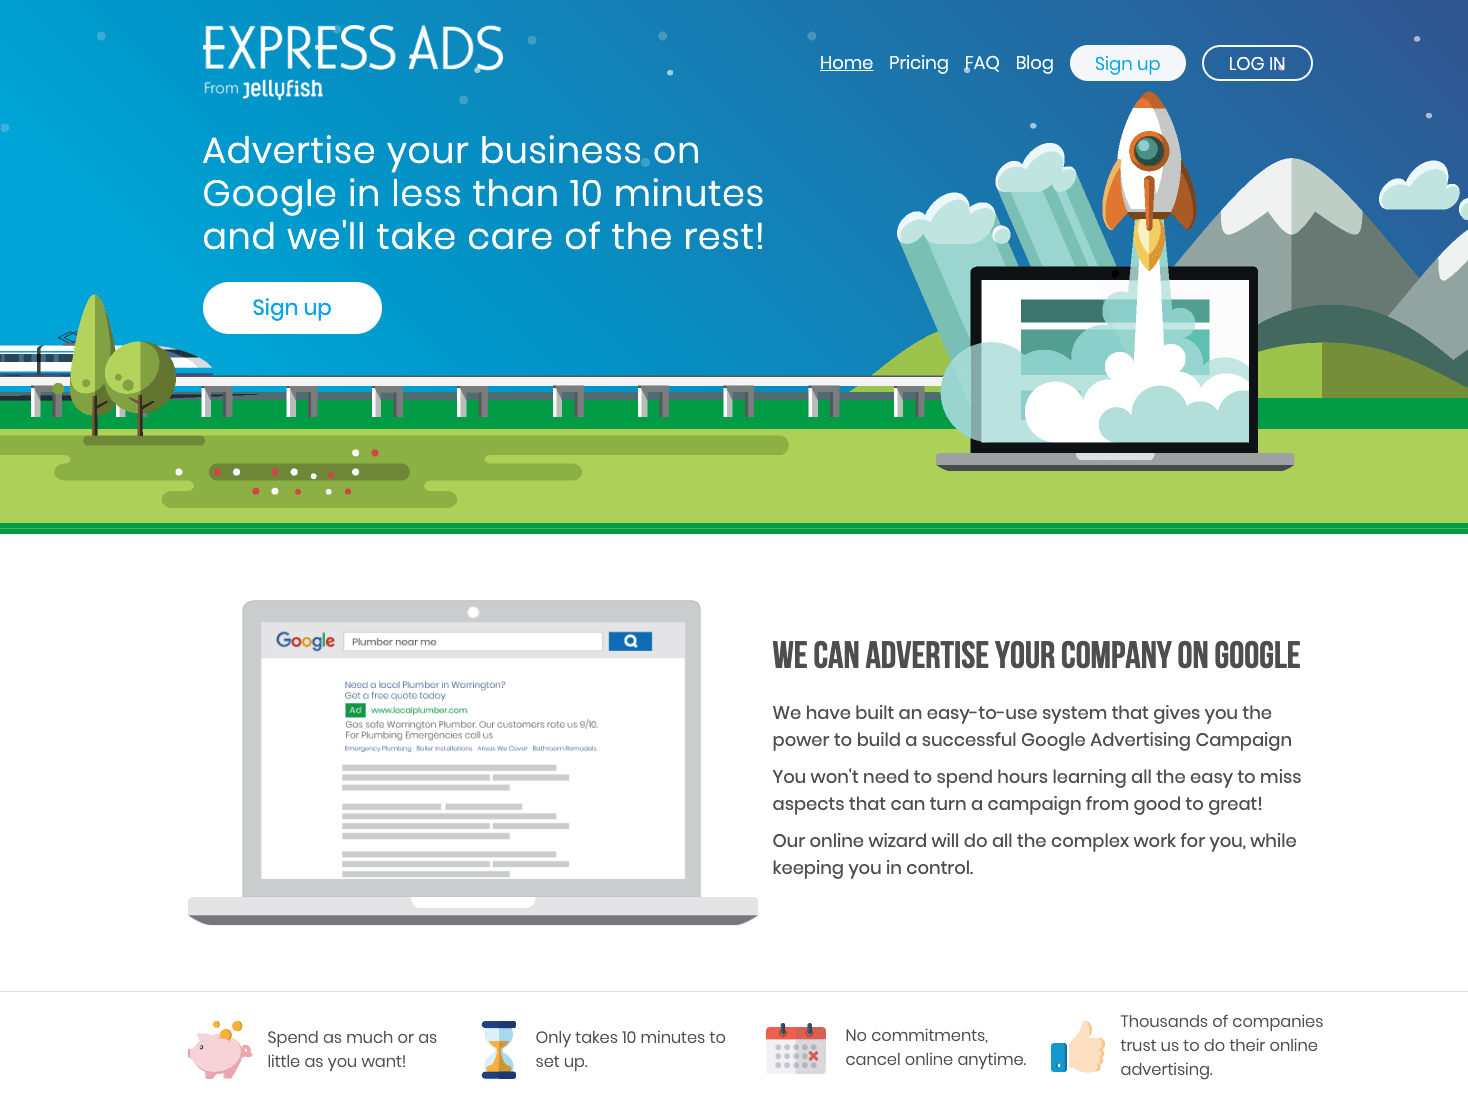 express ads website screenshot showing a landing page from a pay-per-click campaign